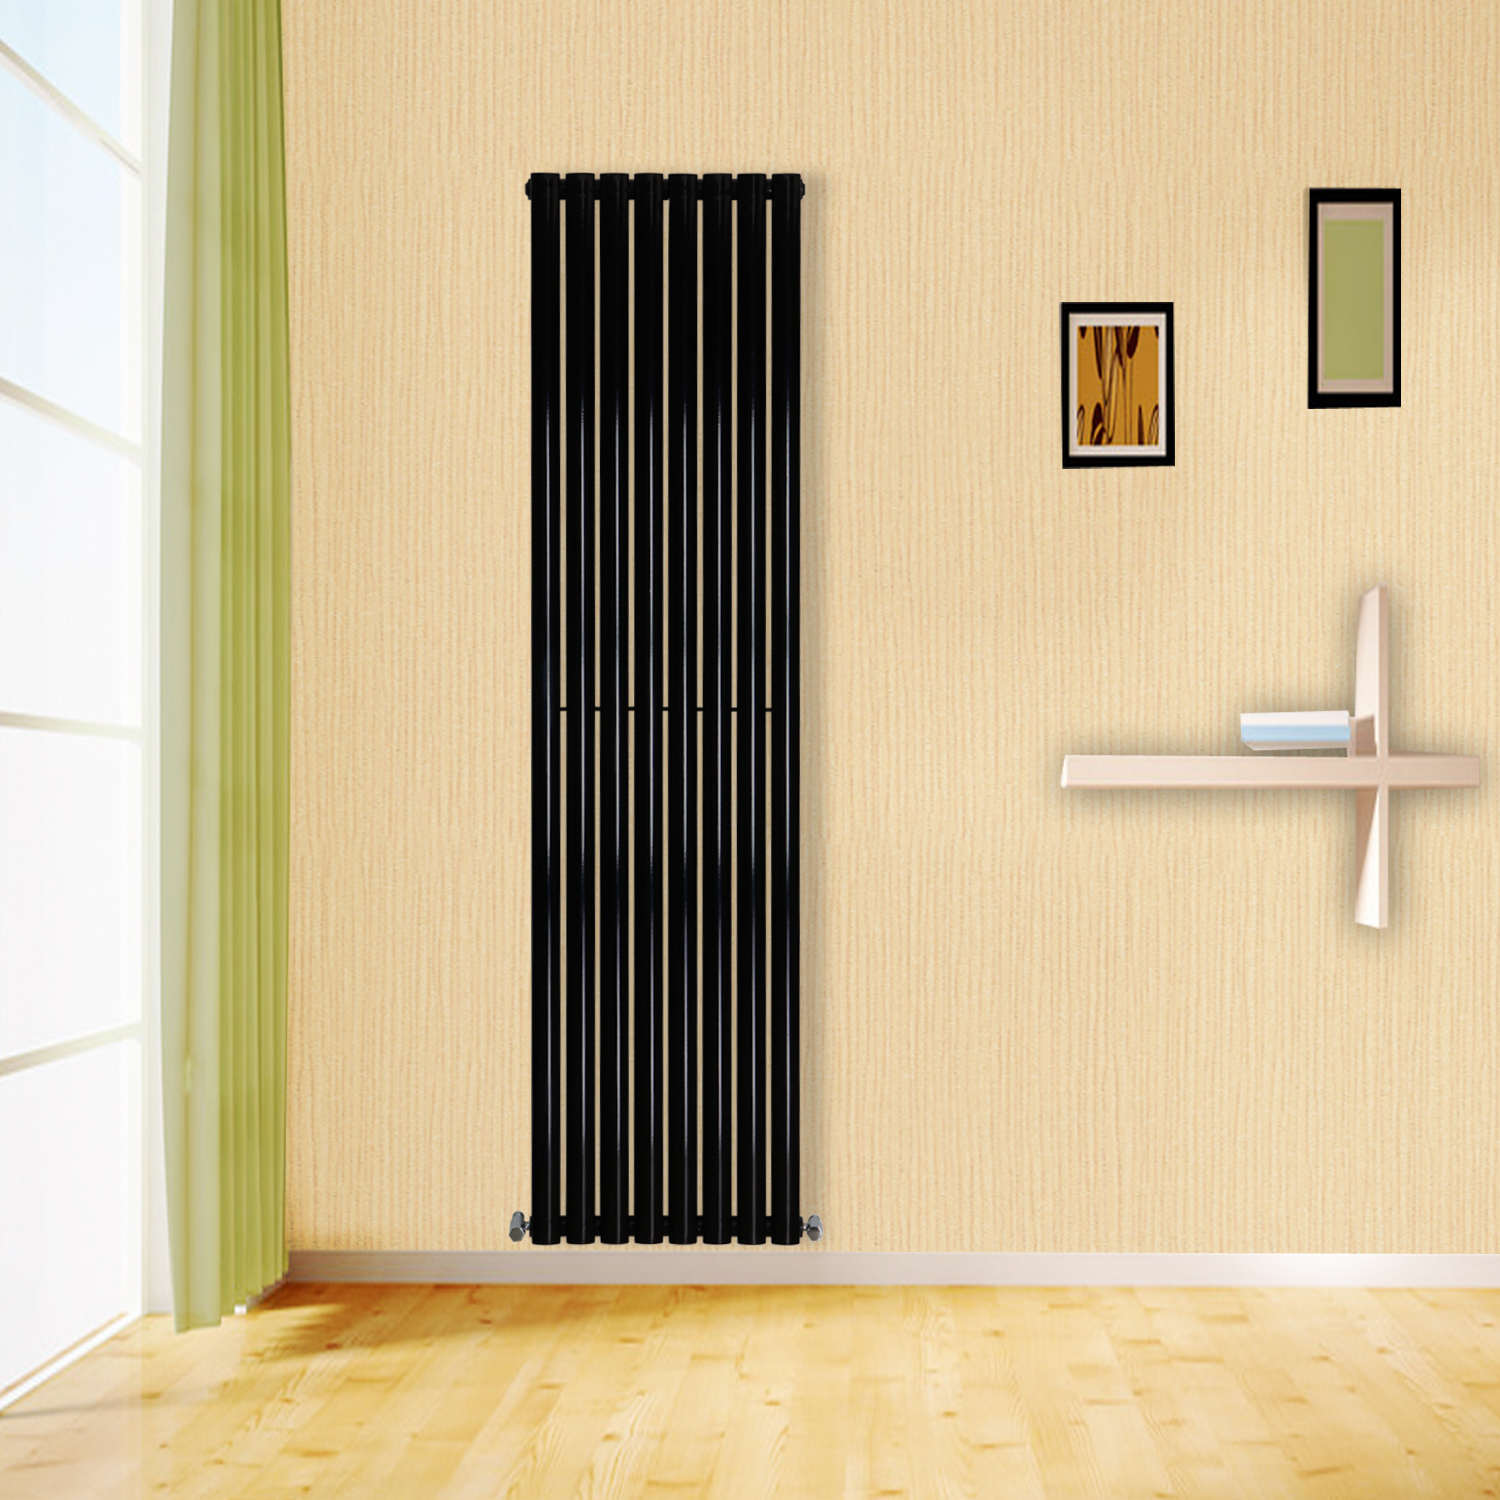 designer oval column bathroom radiators uk central heating horizontal vertical ebay